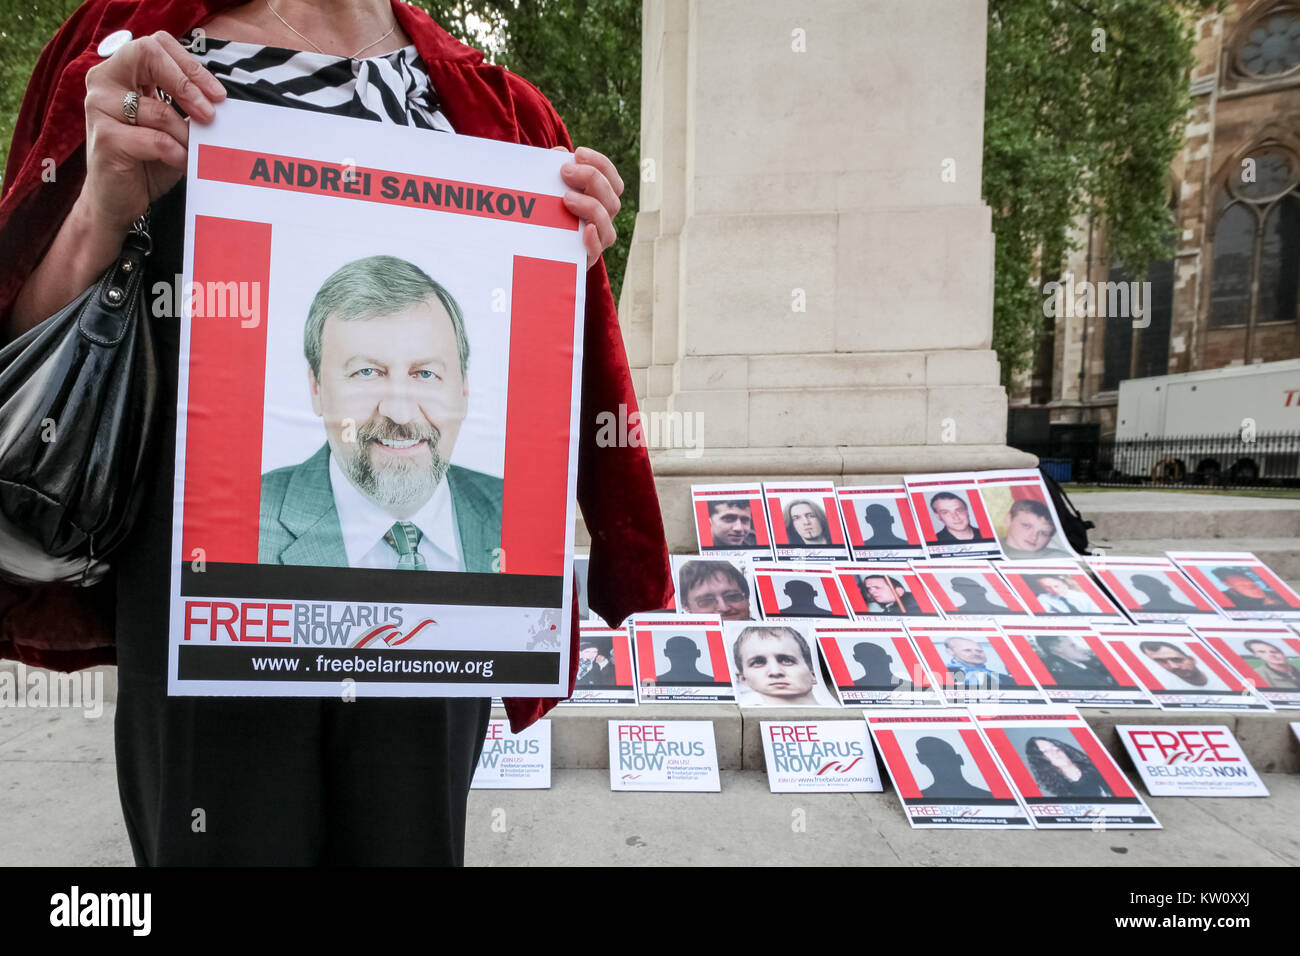 Free Belarus Now protest opposite Westminster's Parliament buildings. London, UK. - Stock Image